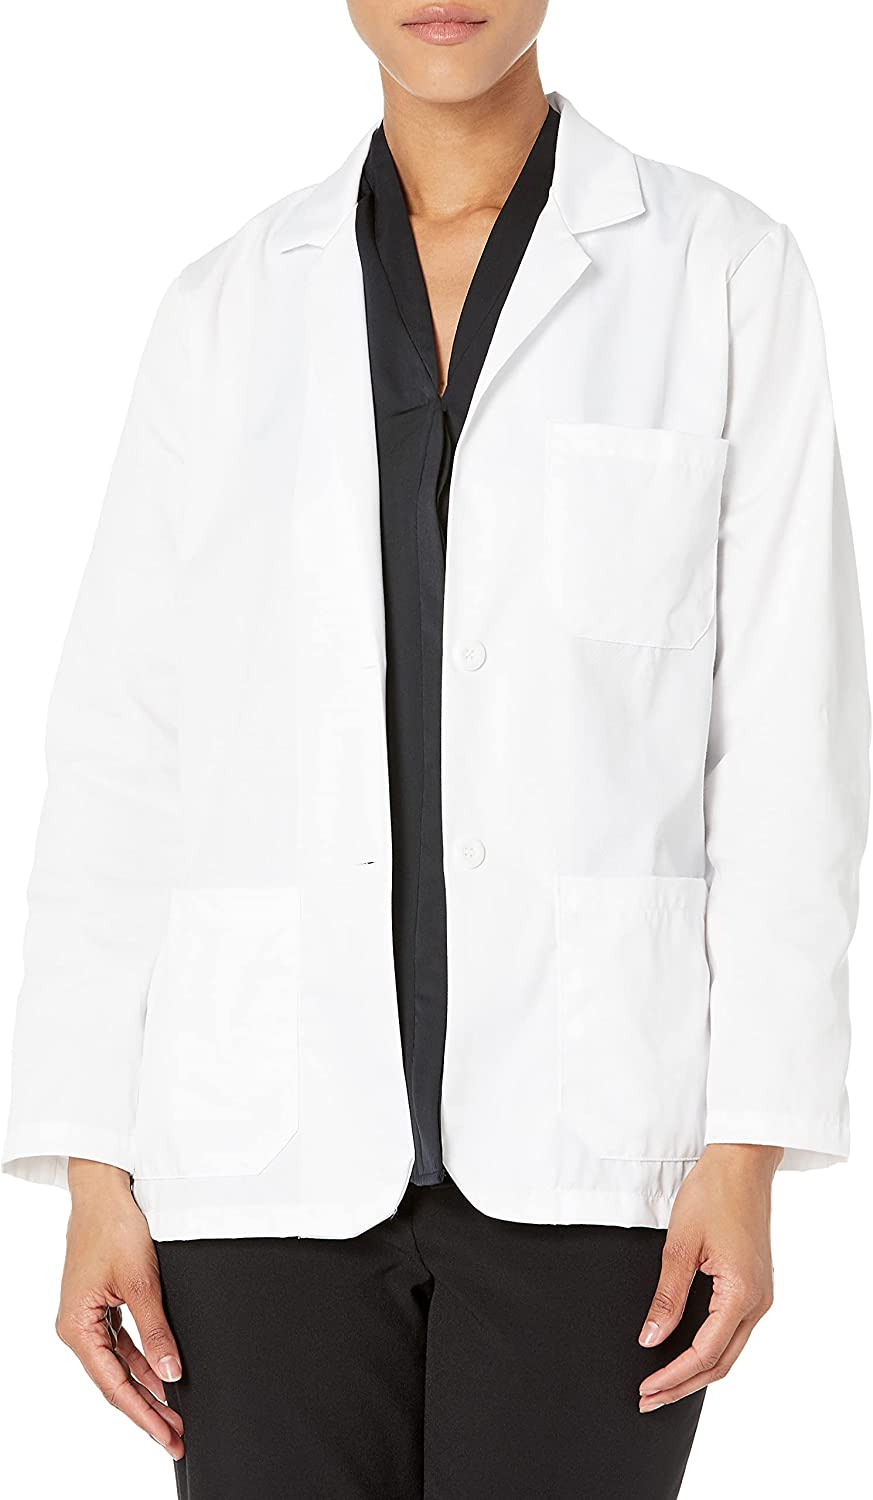 Fashion Seal Outstanding Healthcare Sales Women's Lab Consultation Jacket